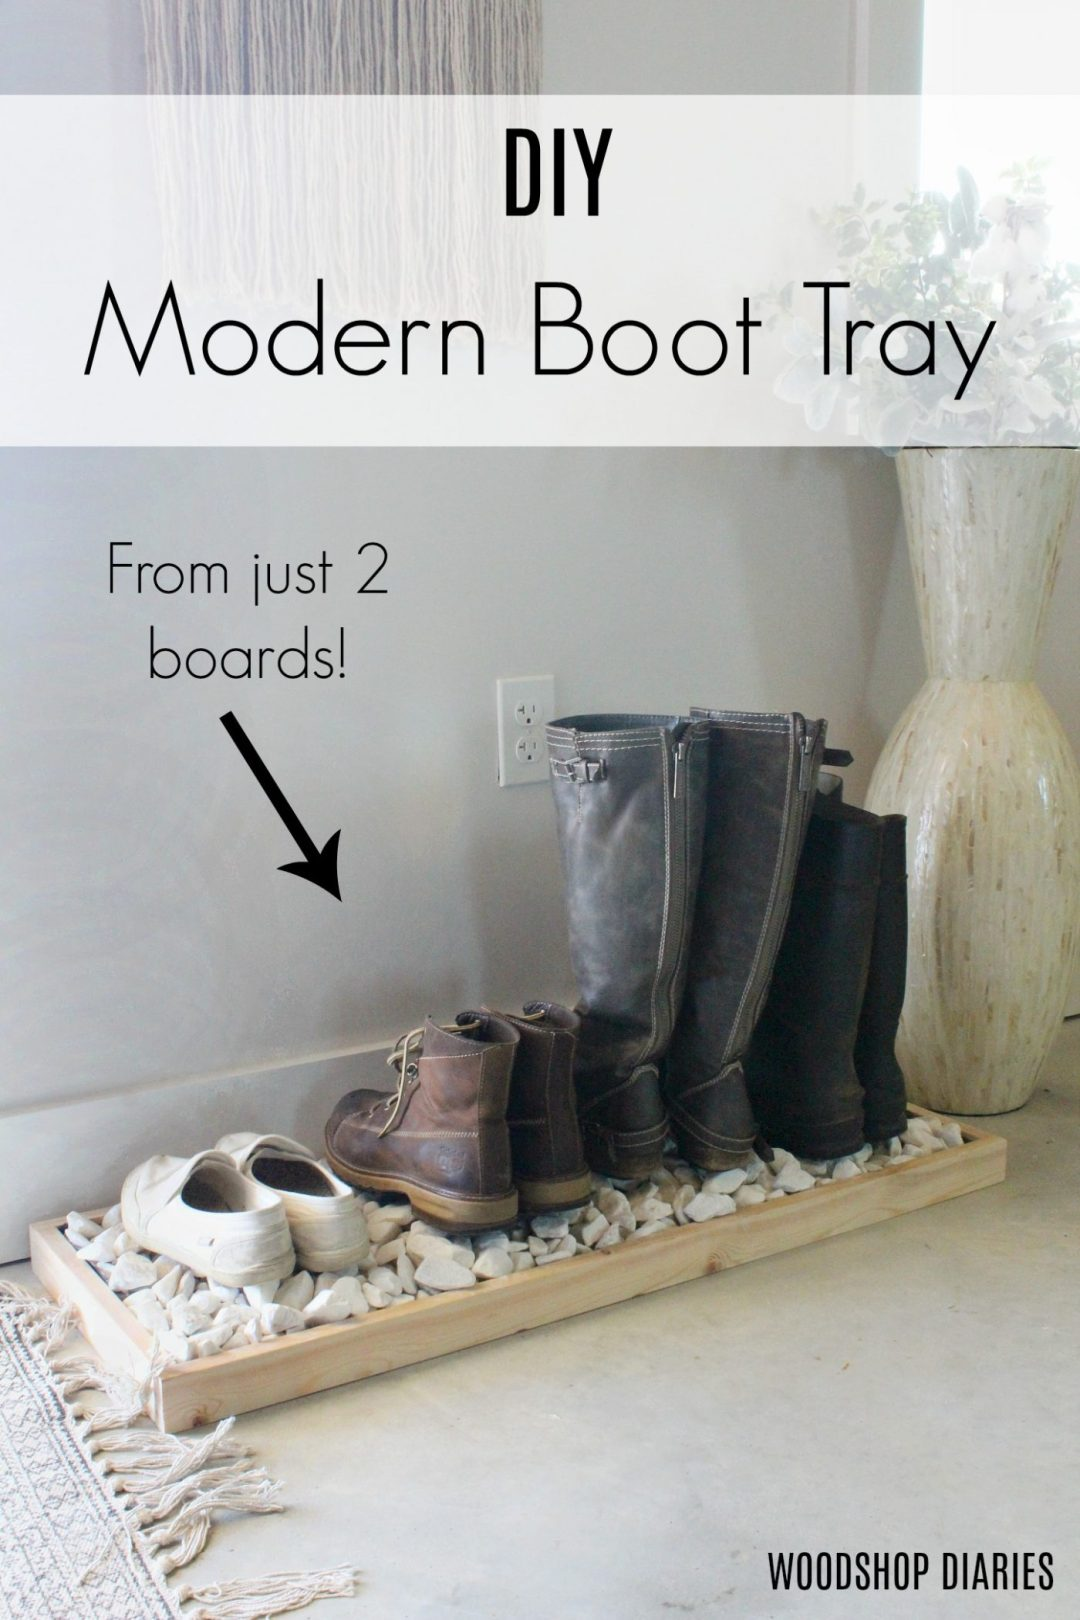 How to build a simple modern DIY boot tray with just two boards! Great beginner woodworking project